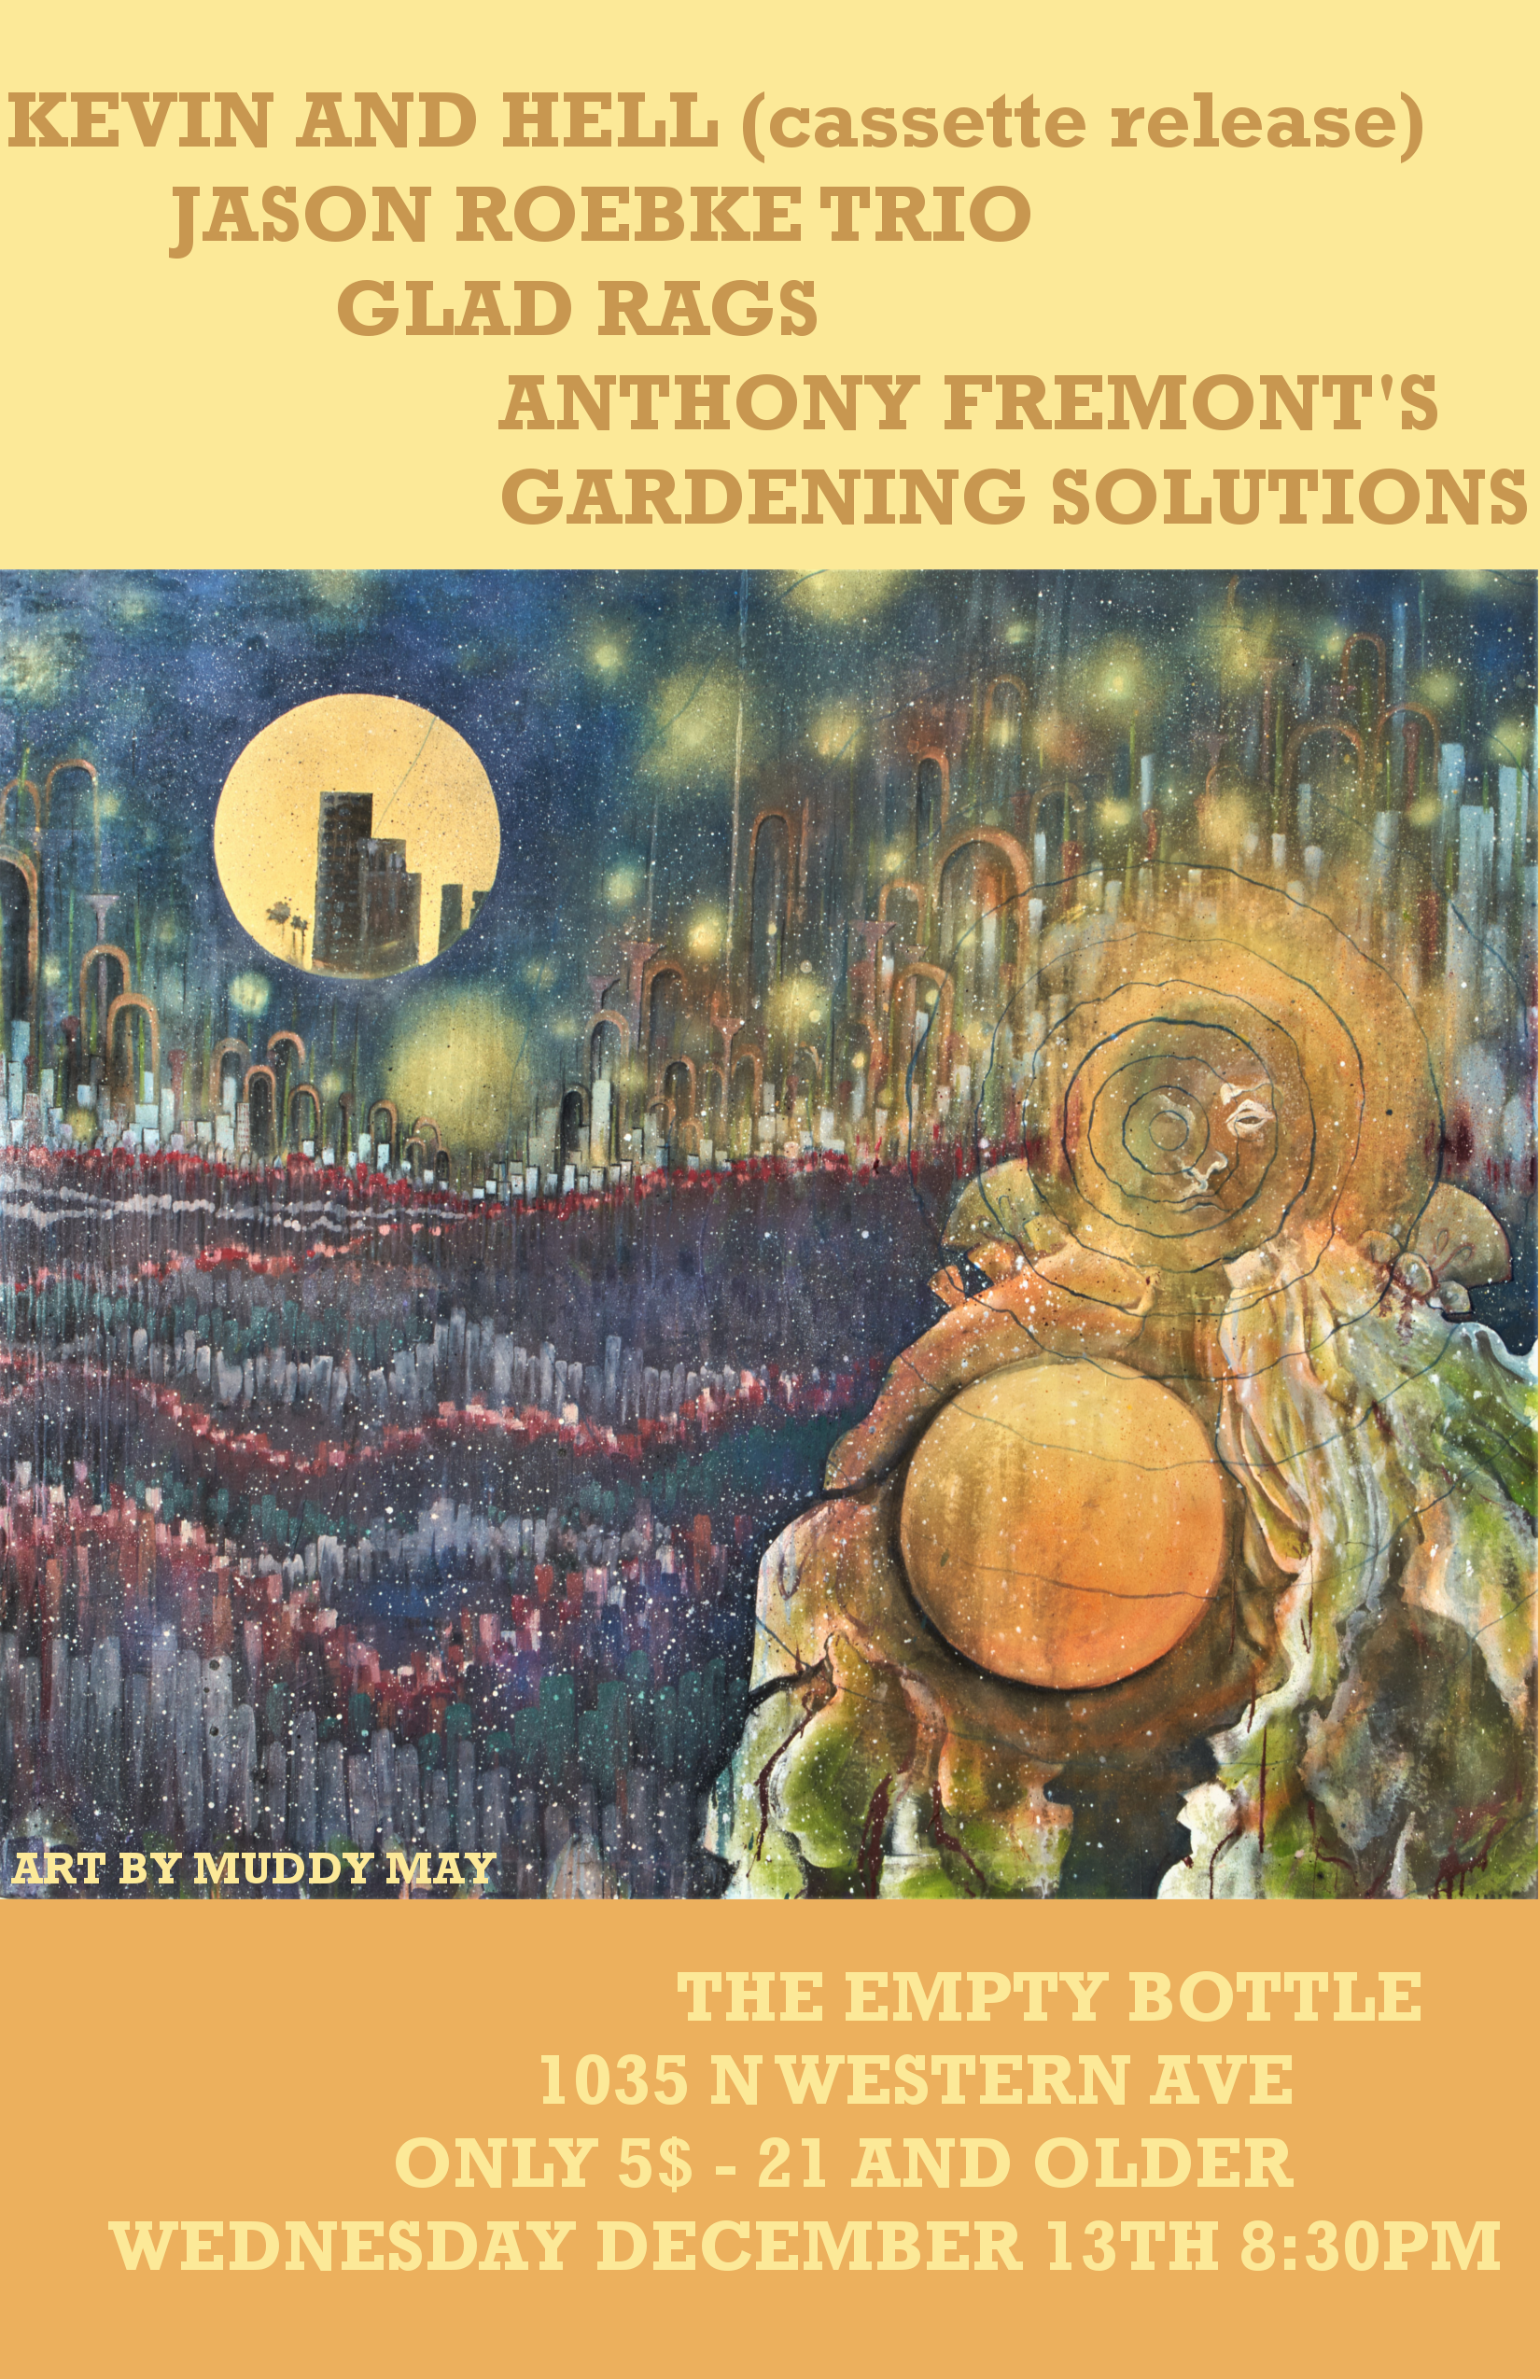 Kevin and Hell (Cassette Release) / Jason Roebke / Glad Rags / Anthony Fremont's Garden Solutions